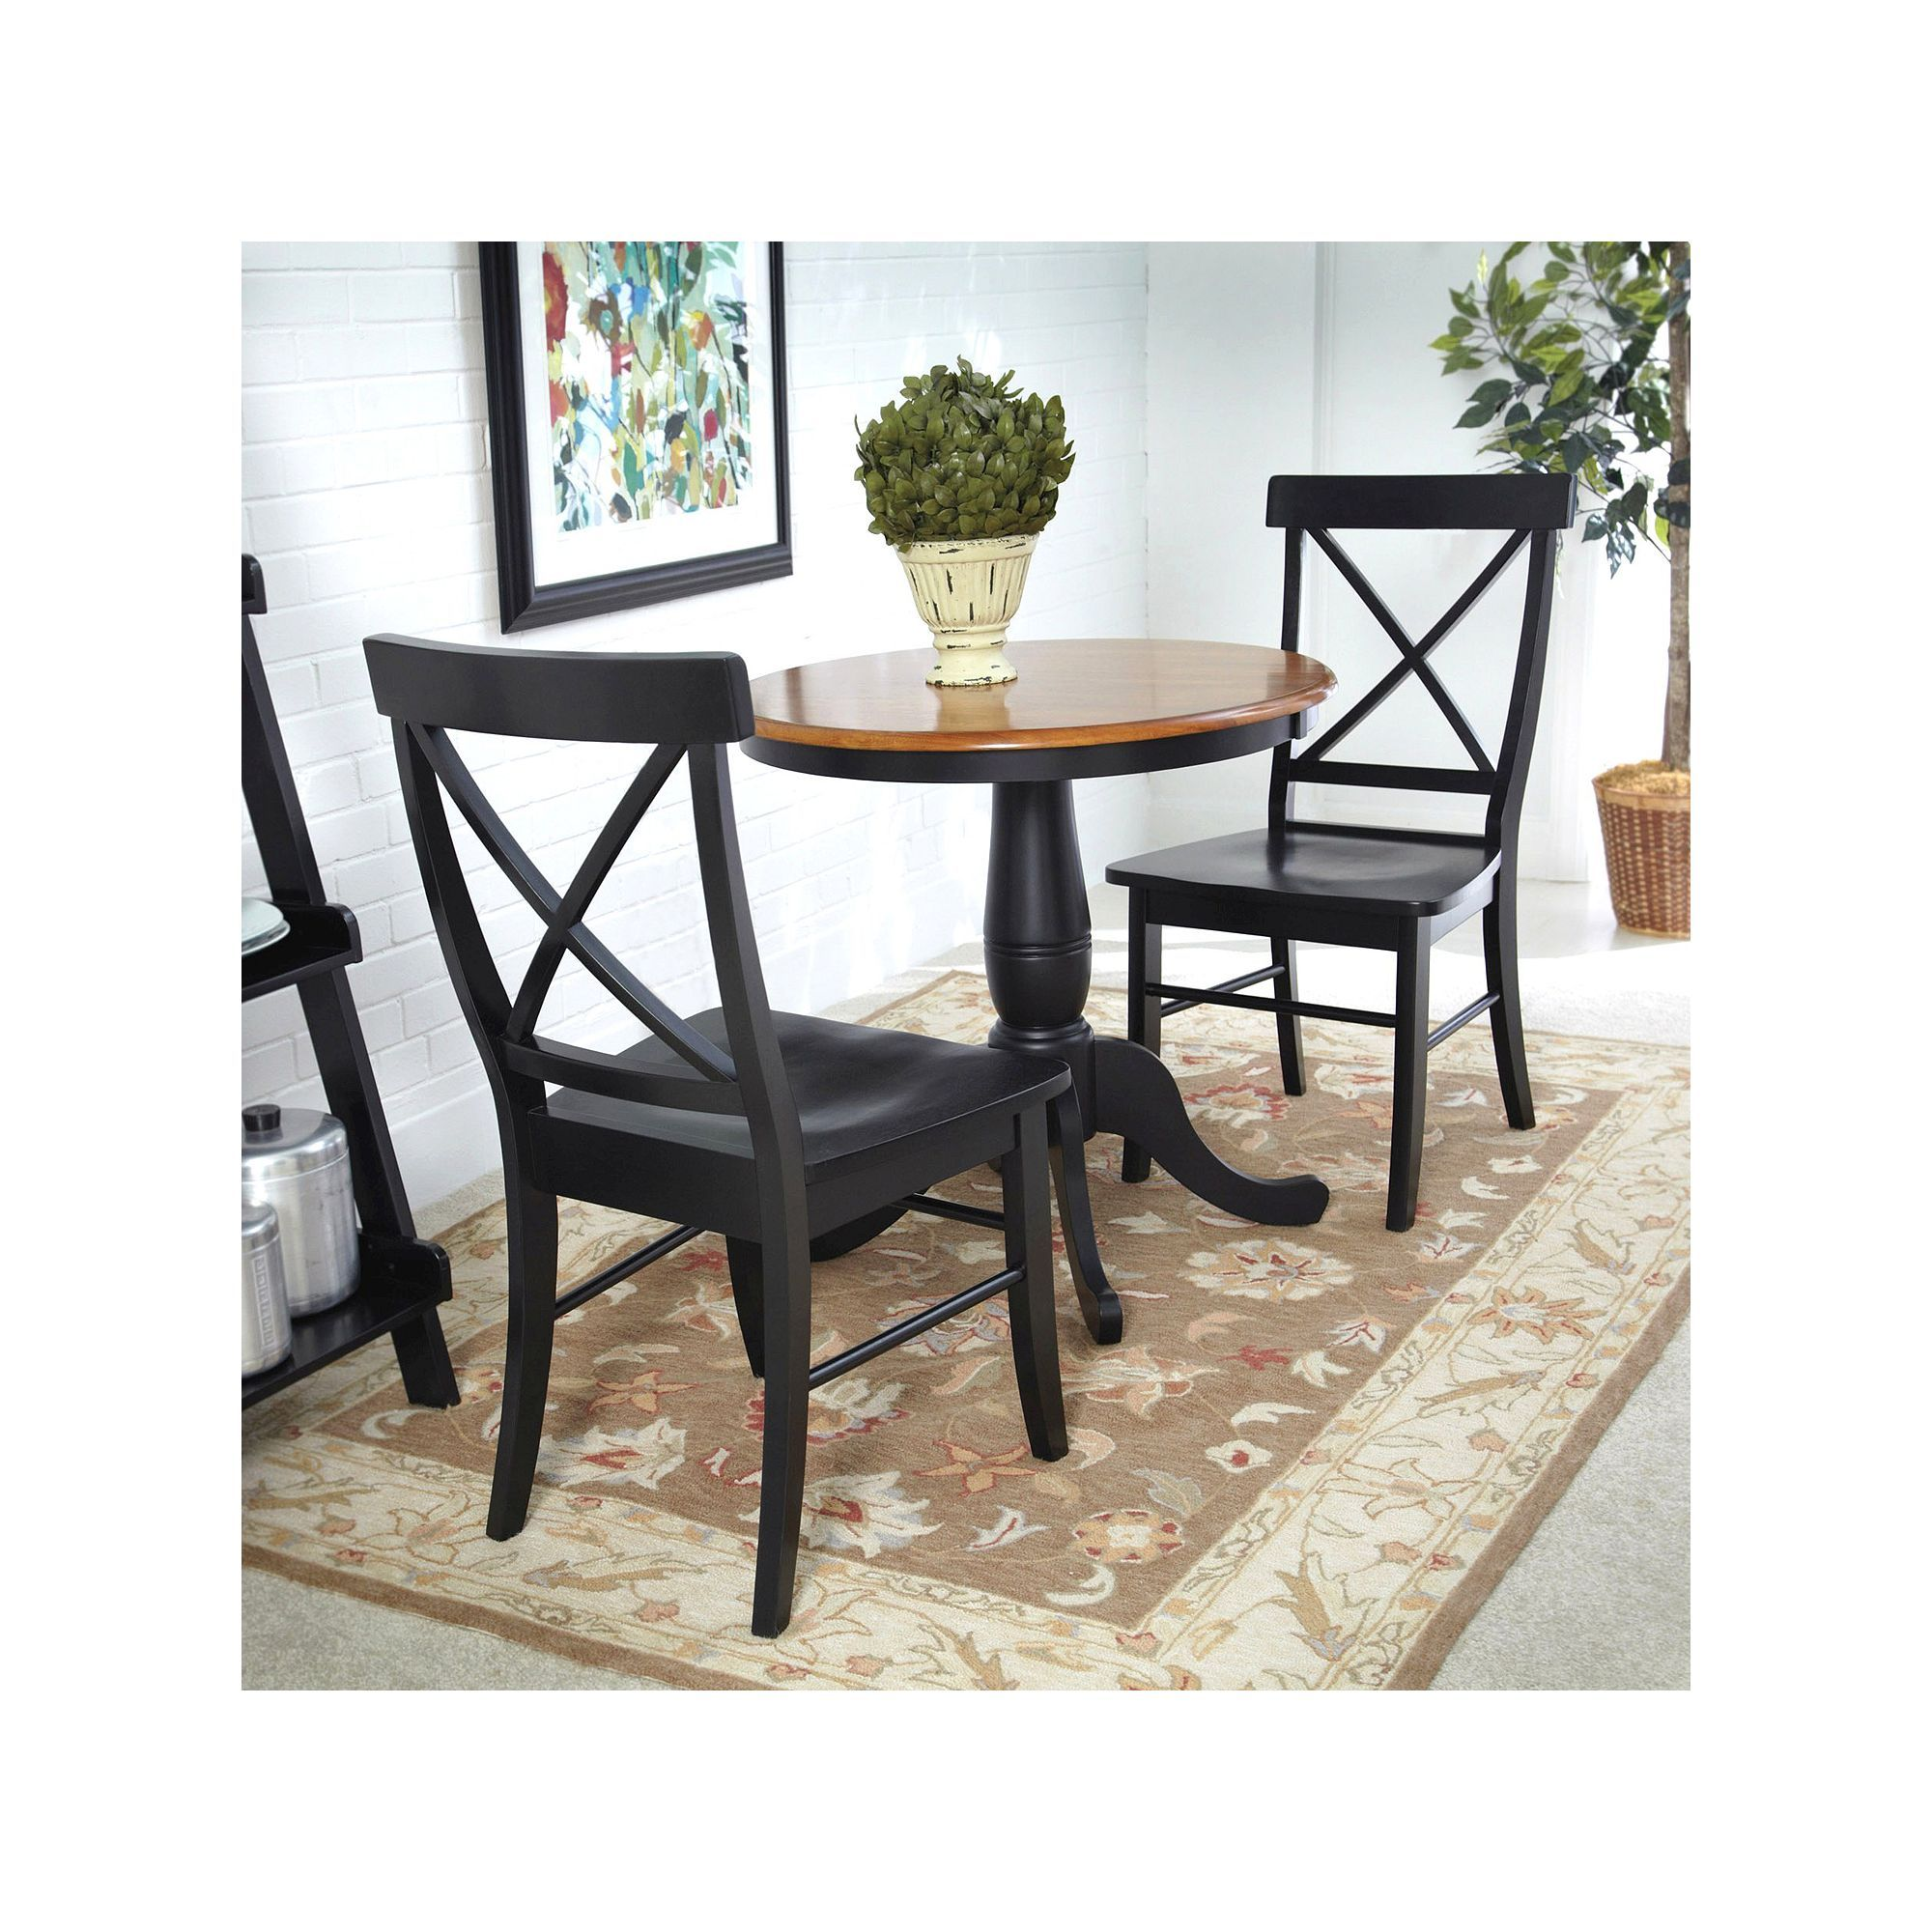 3 pc round dining table x back chair set products round rh pinterest ch